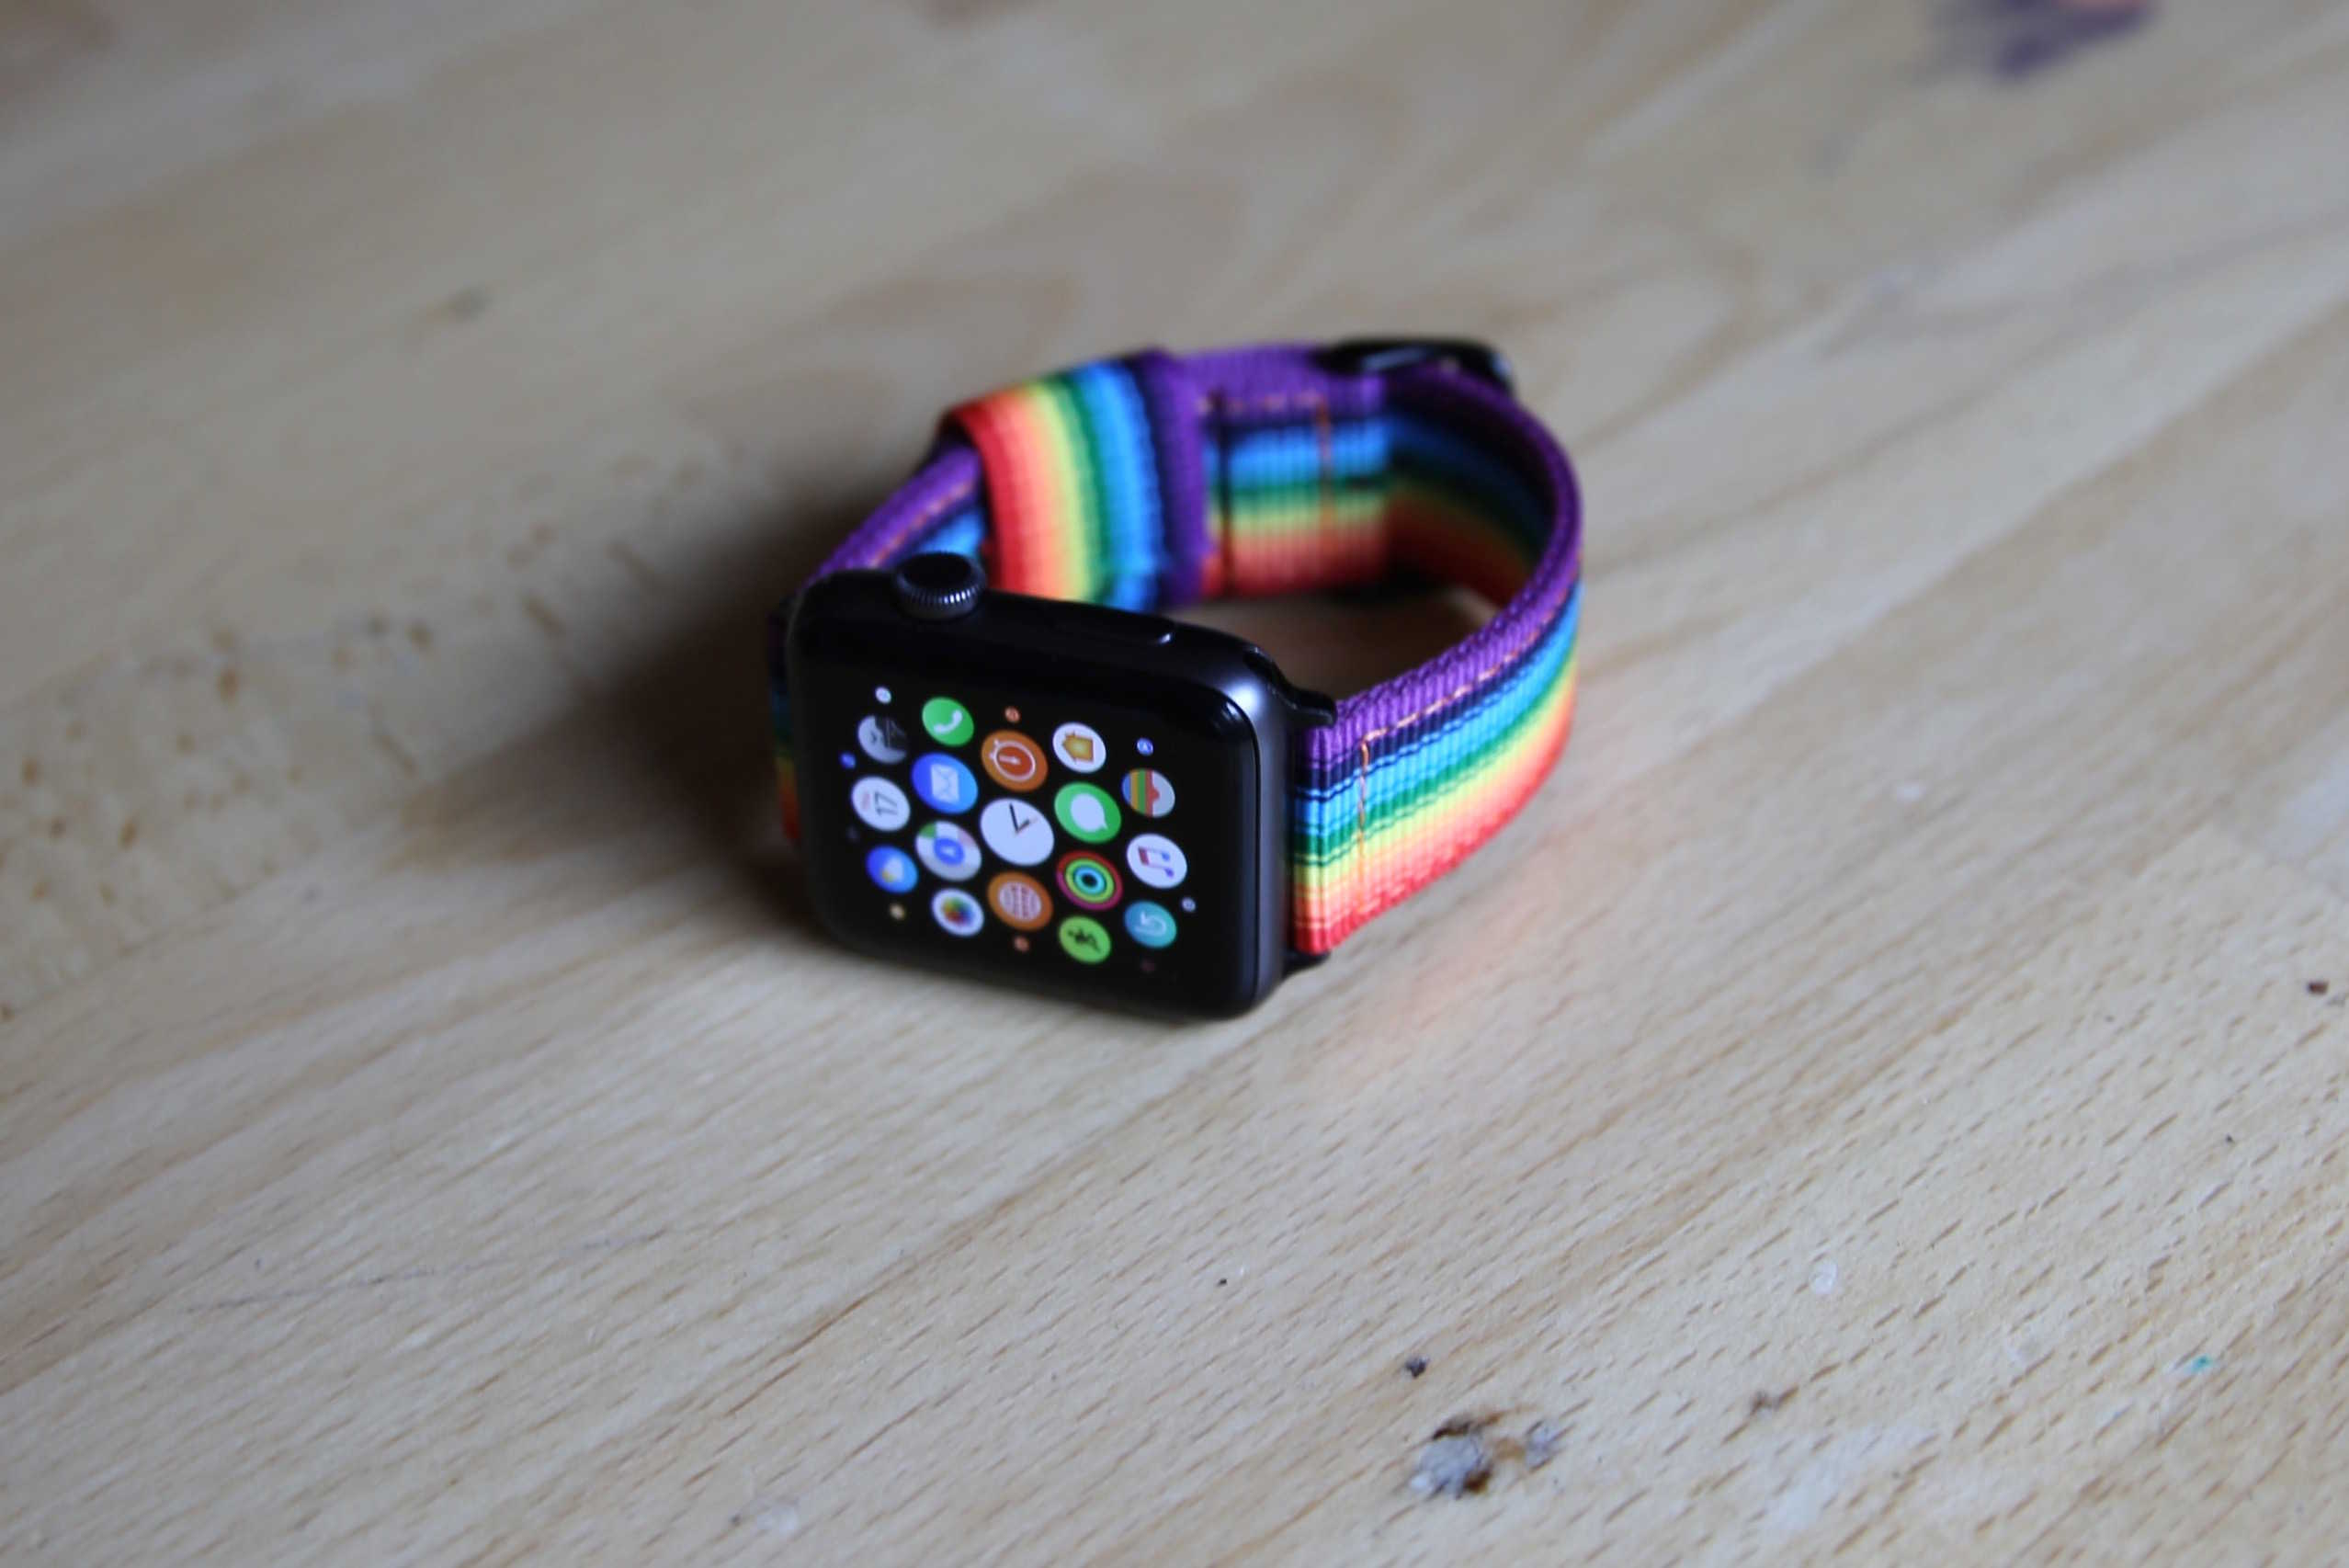 The Love is Love Pride band from Nyloon closely resembles Apple's own rainbow Apple Watch band that was released last year.